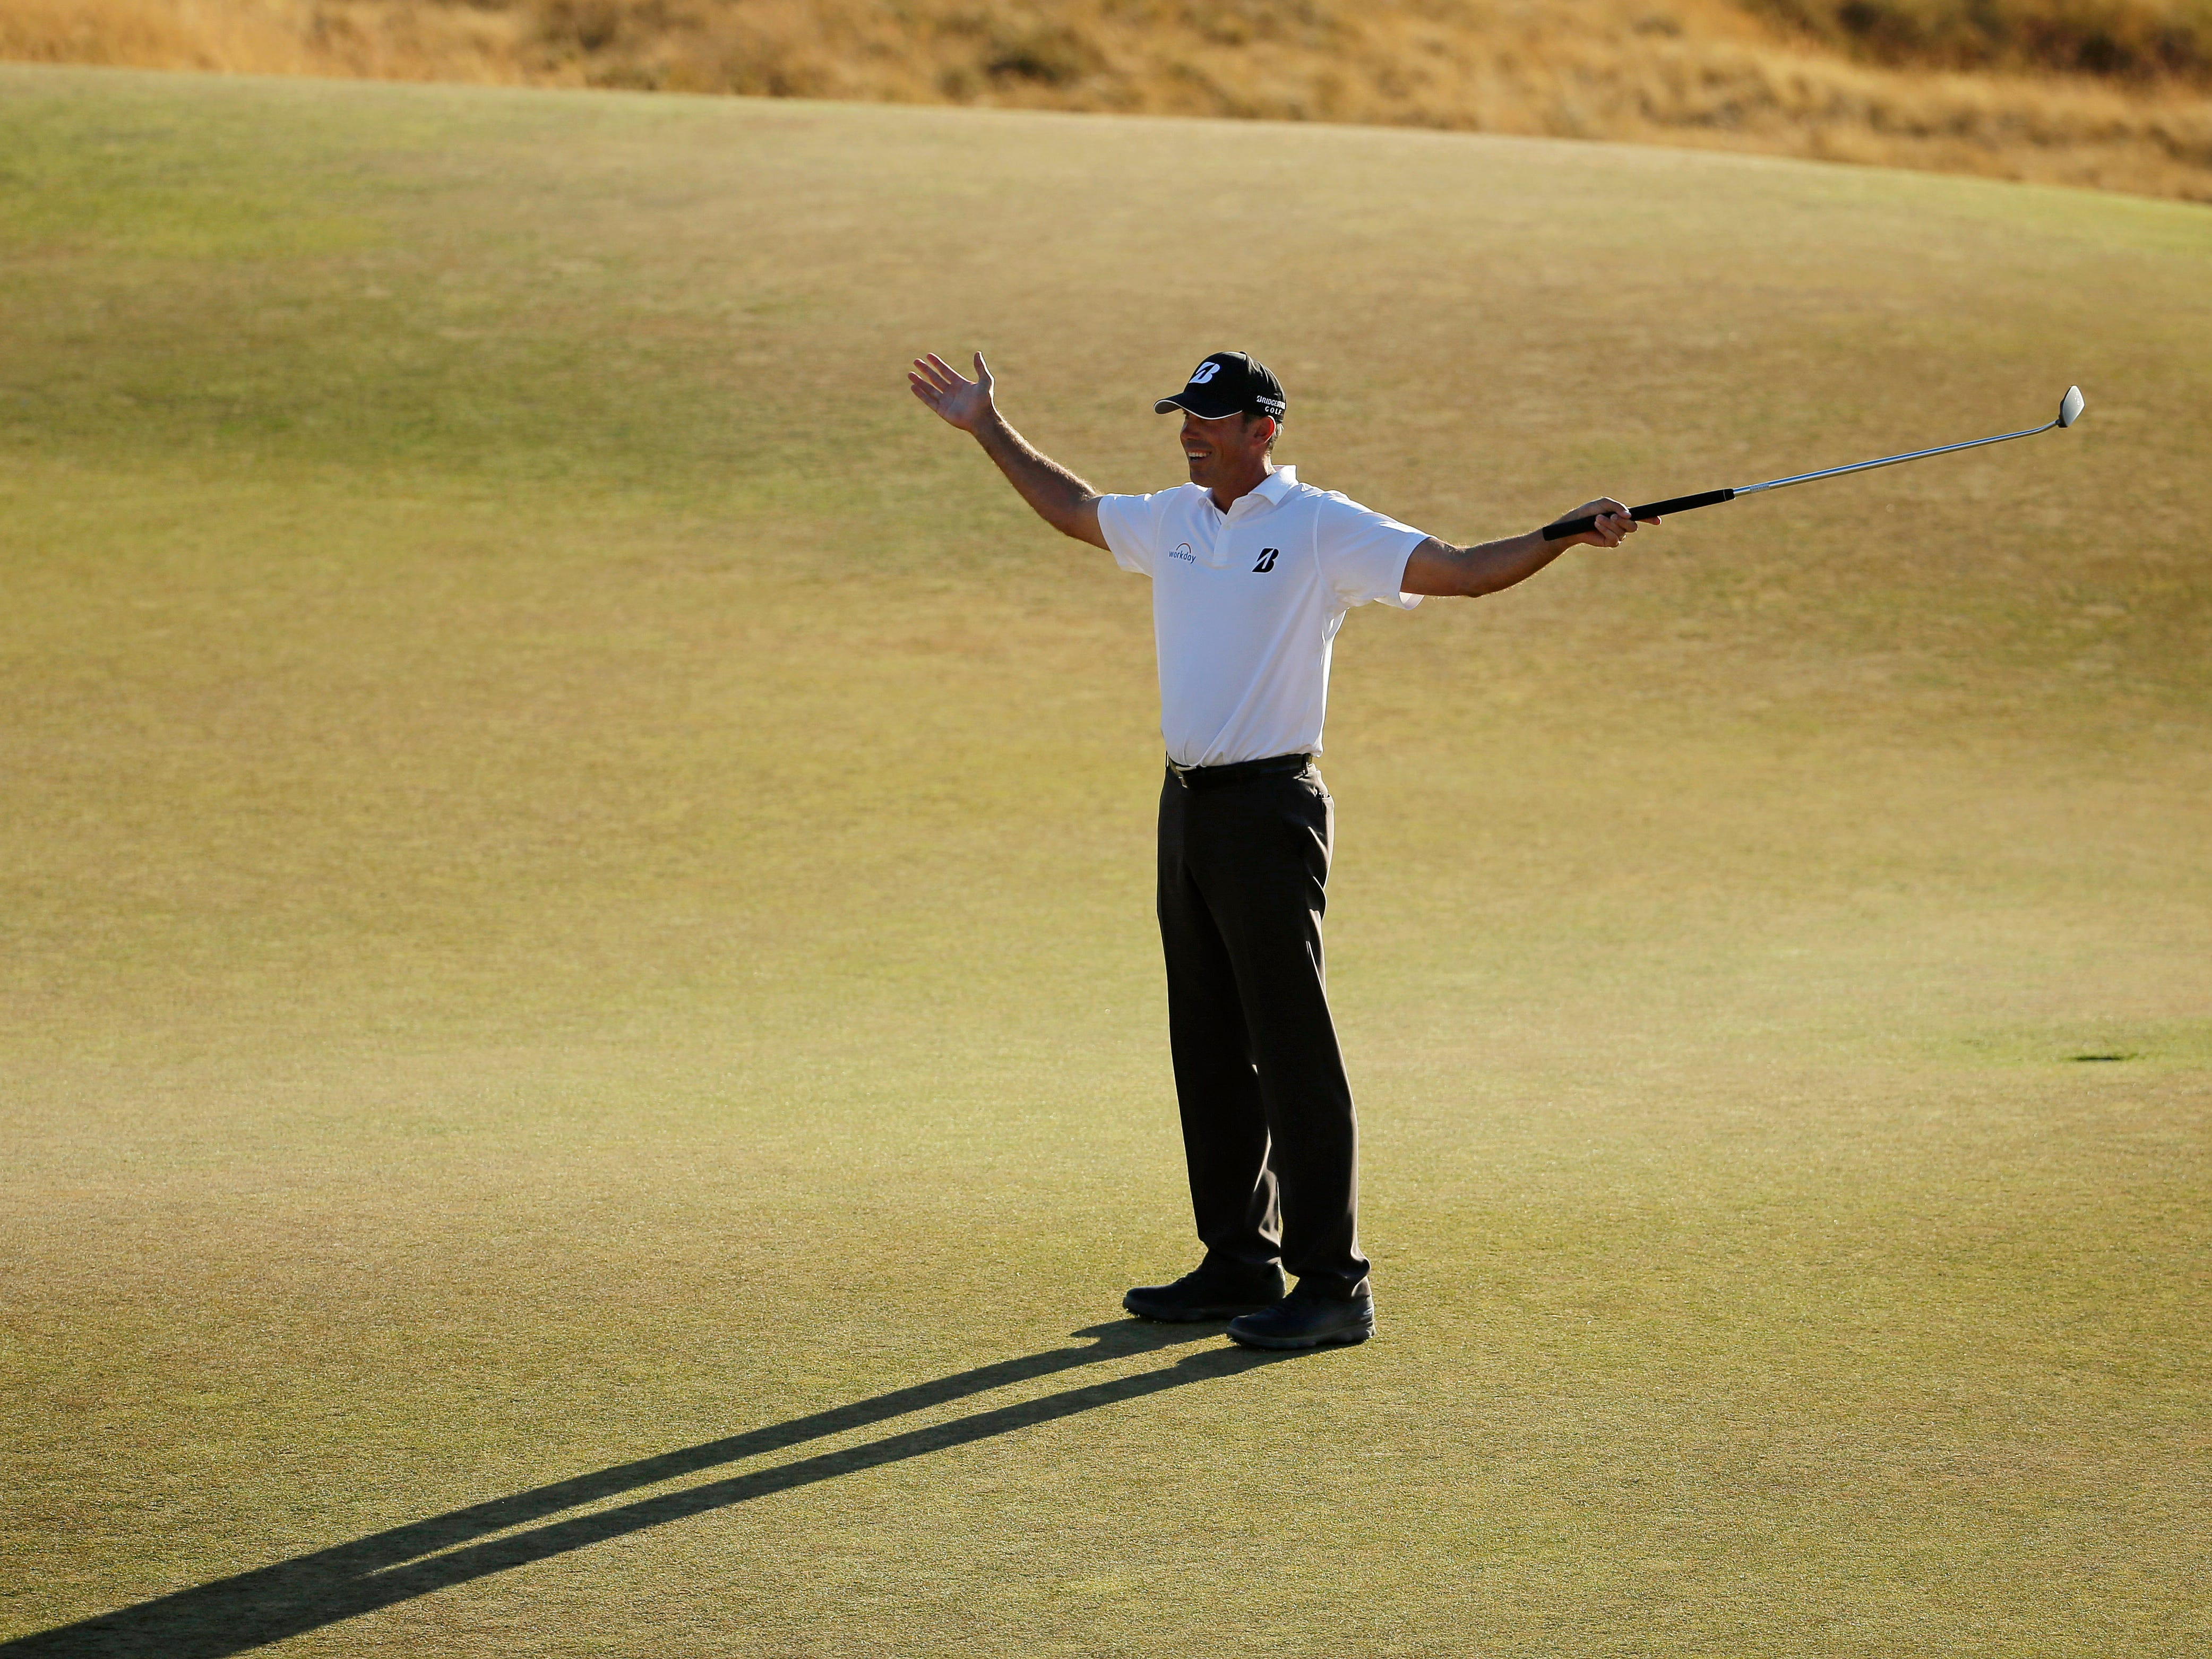 Matt Kuchar reacts to his putt on the 18th hole during the second round of the U.S. Open golf tournament at Chambers Bay on Friday, June 19, 2015 in University Place, Wash. (AP Photo/Ted S. Warren)